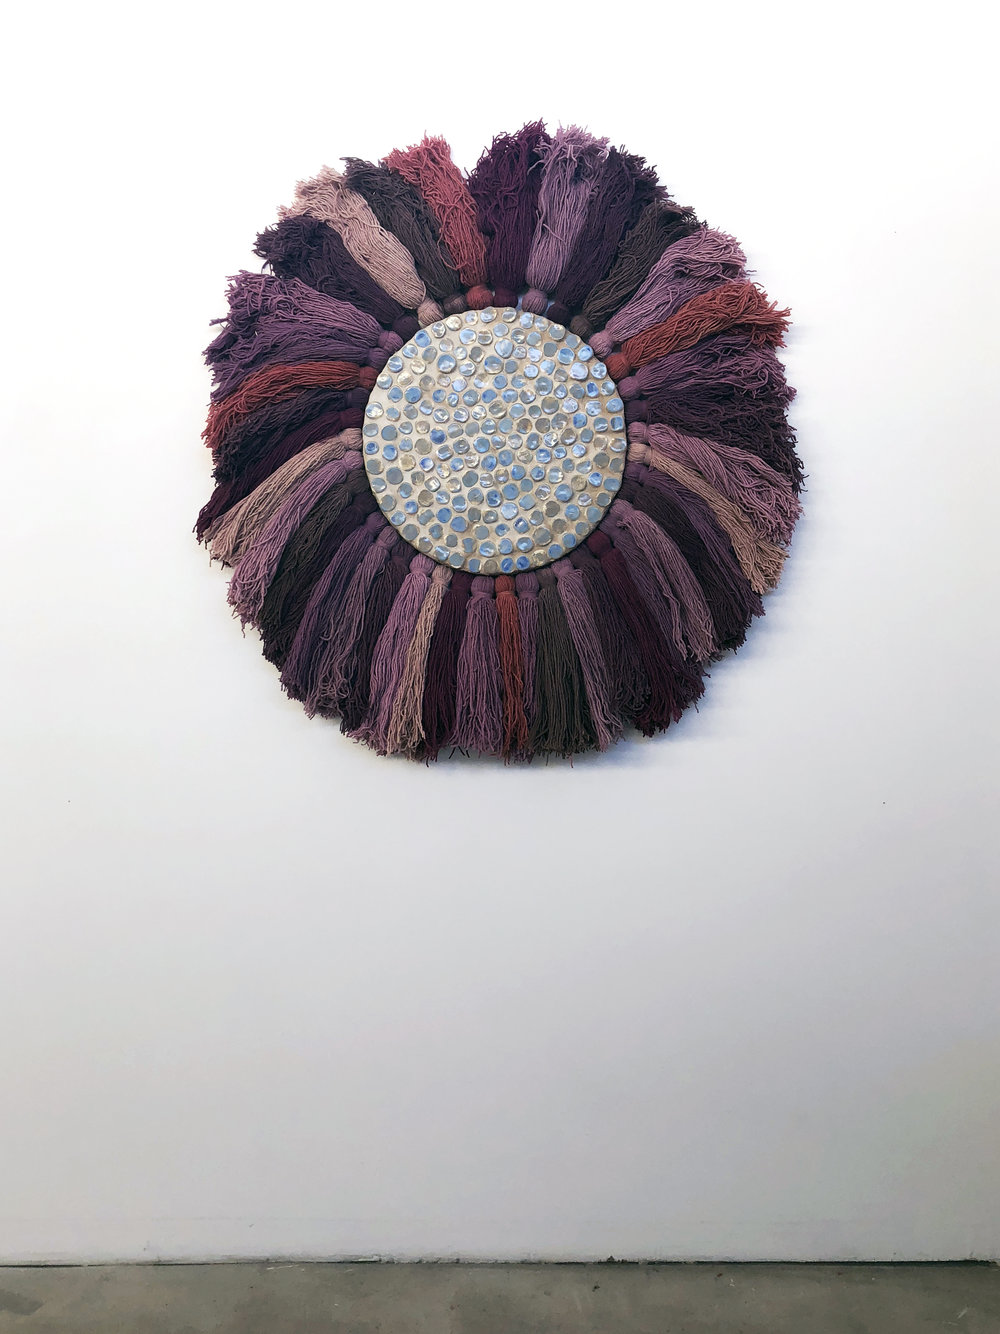 Continuum  , 2018, wool, porcelain, sand on wood panel, 46 inches in diameter